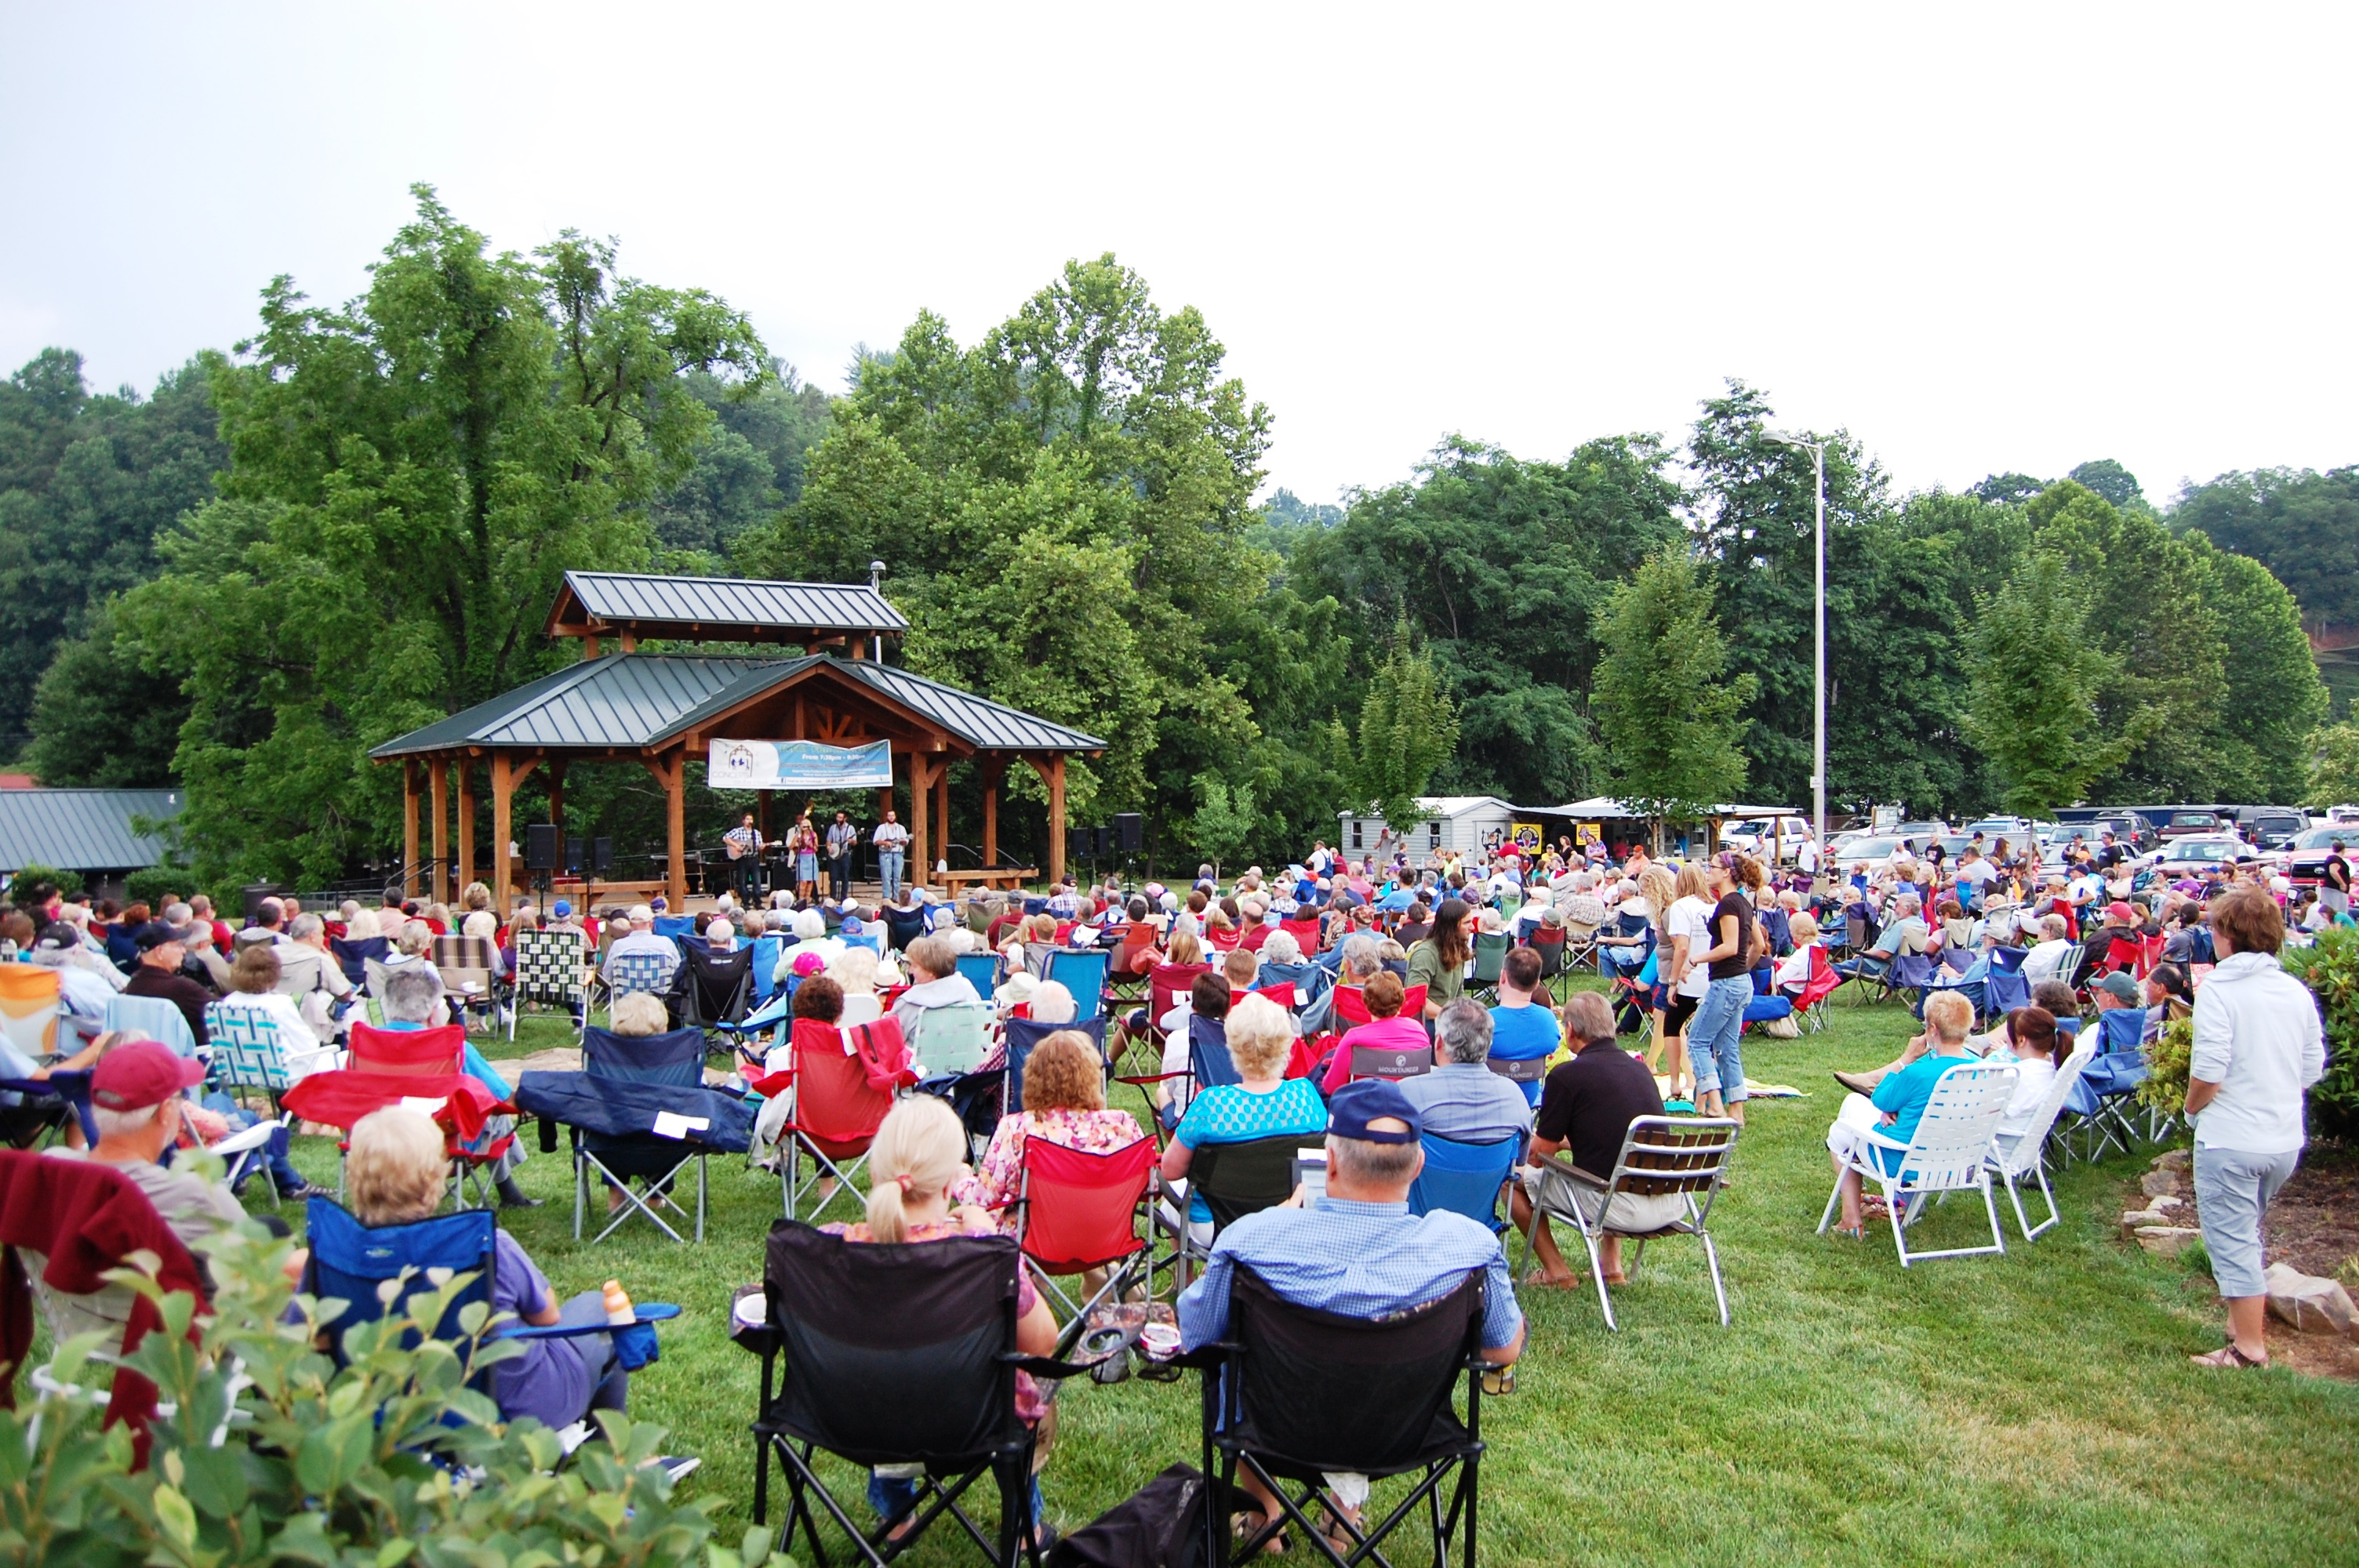 concert attendees on the lawn in Sylva NC